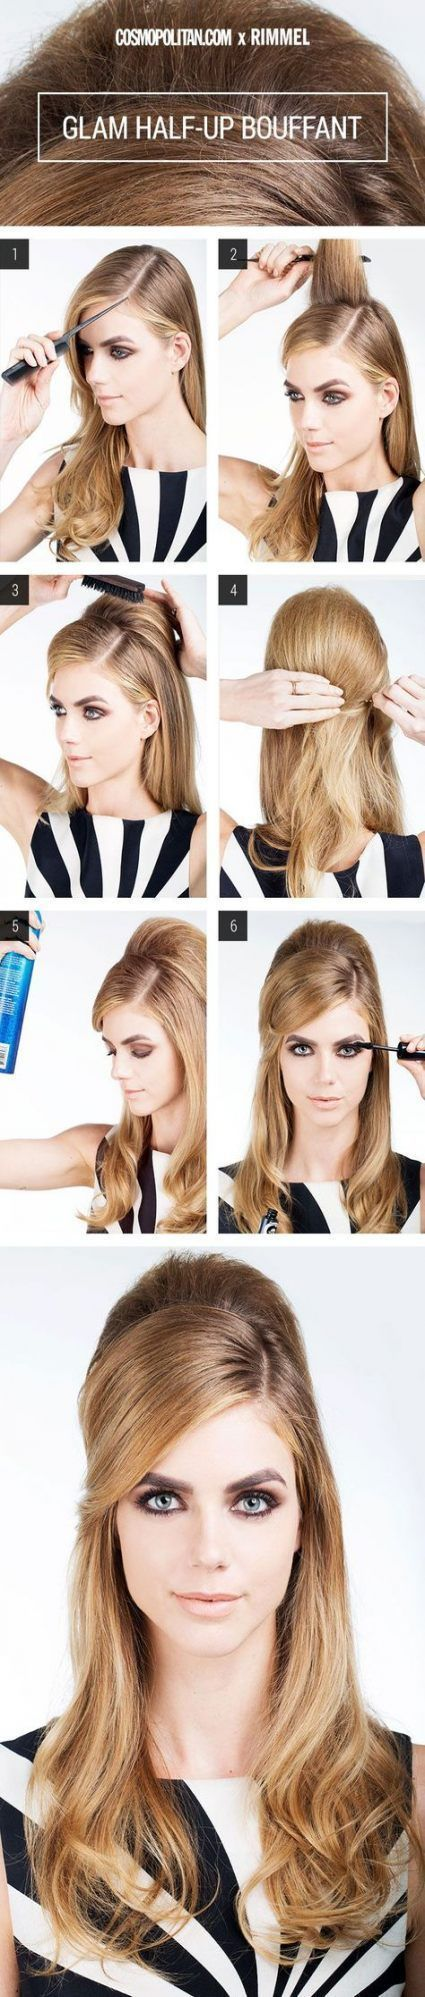 New Wedding Hairstyles How To Lazy Girl Ideas, #girl #hairstyleforlonglazygirl #wedding fri ...